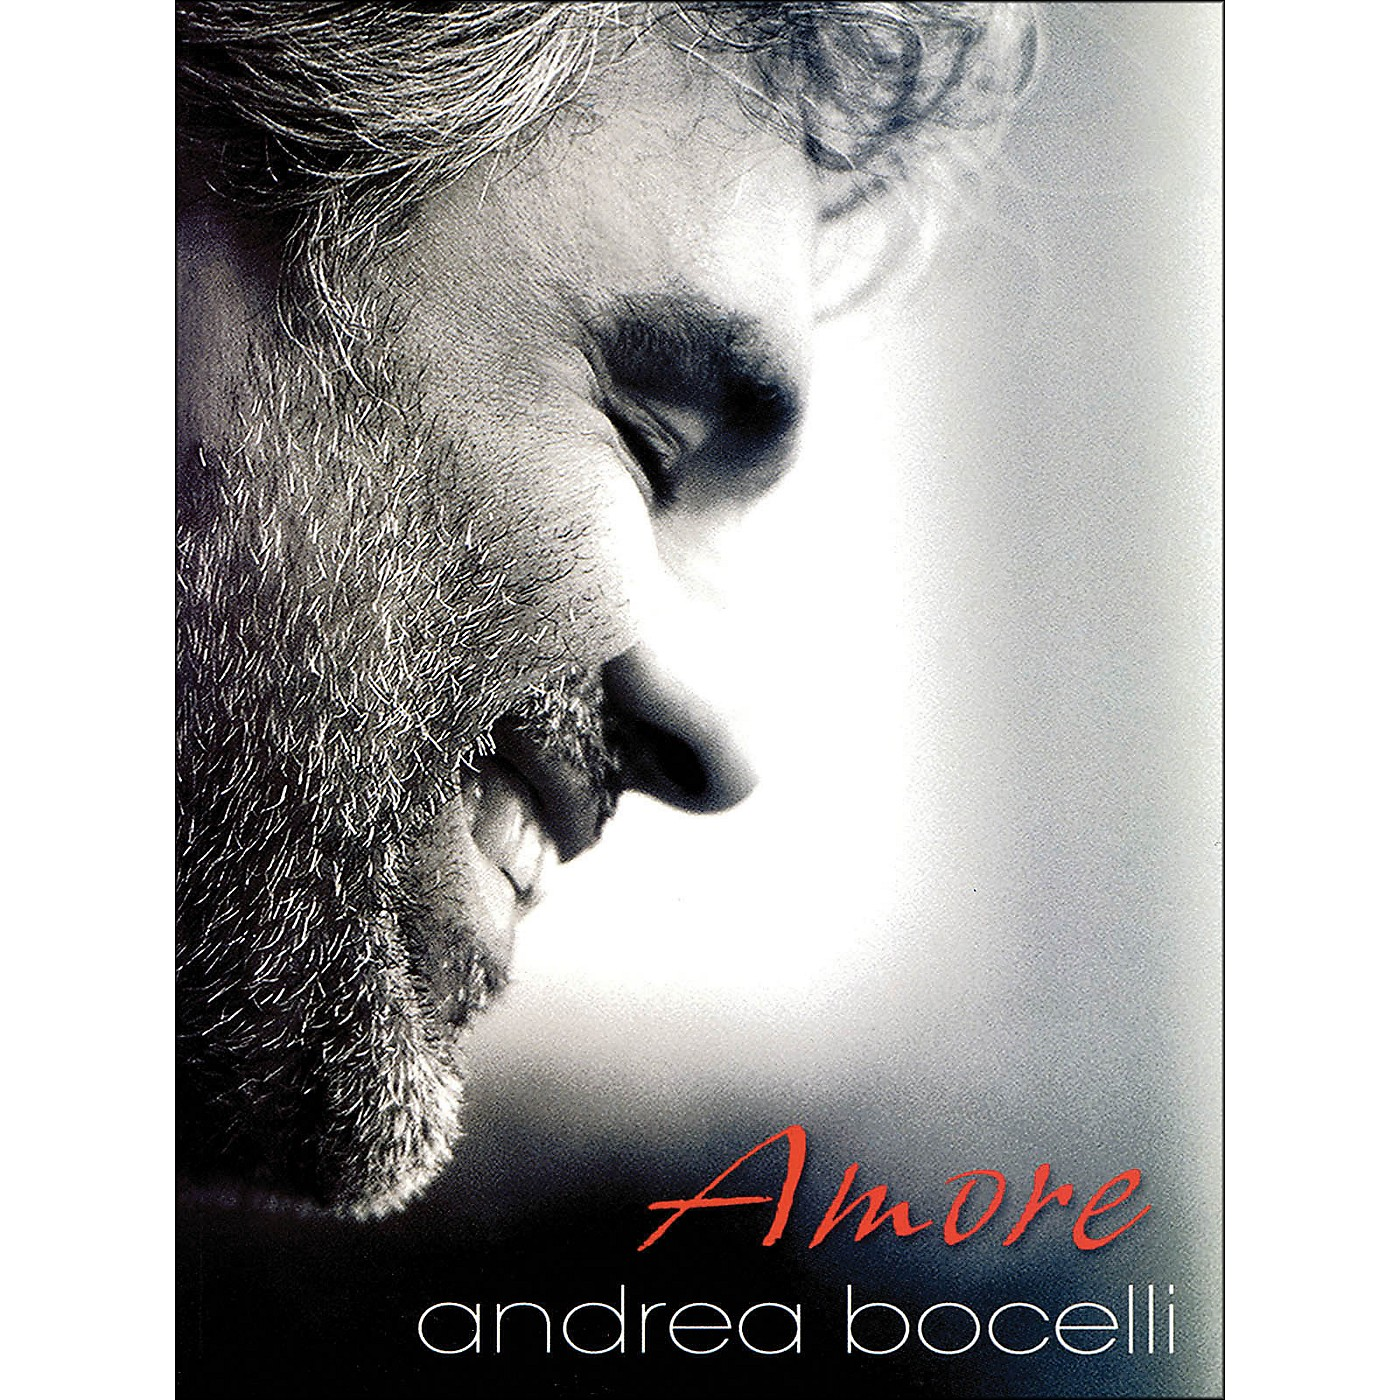 Hal Leonard Andrea Bocelli Amore arranged for piano, vocal, and guitar (P/V/G) thumbnail